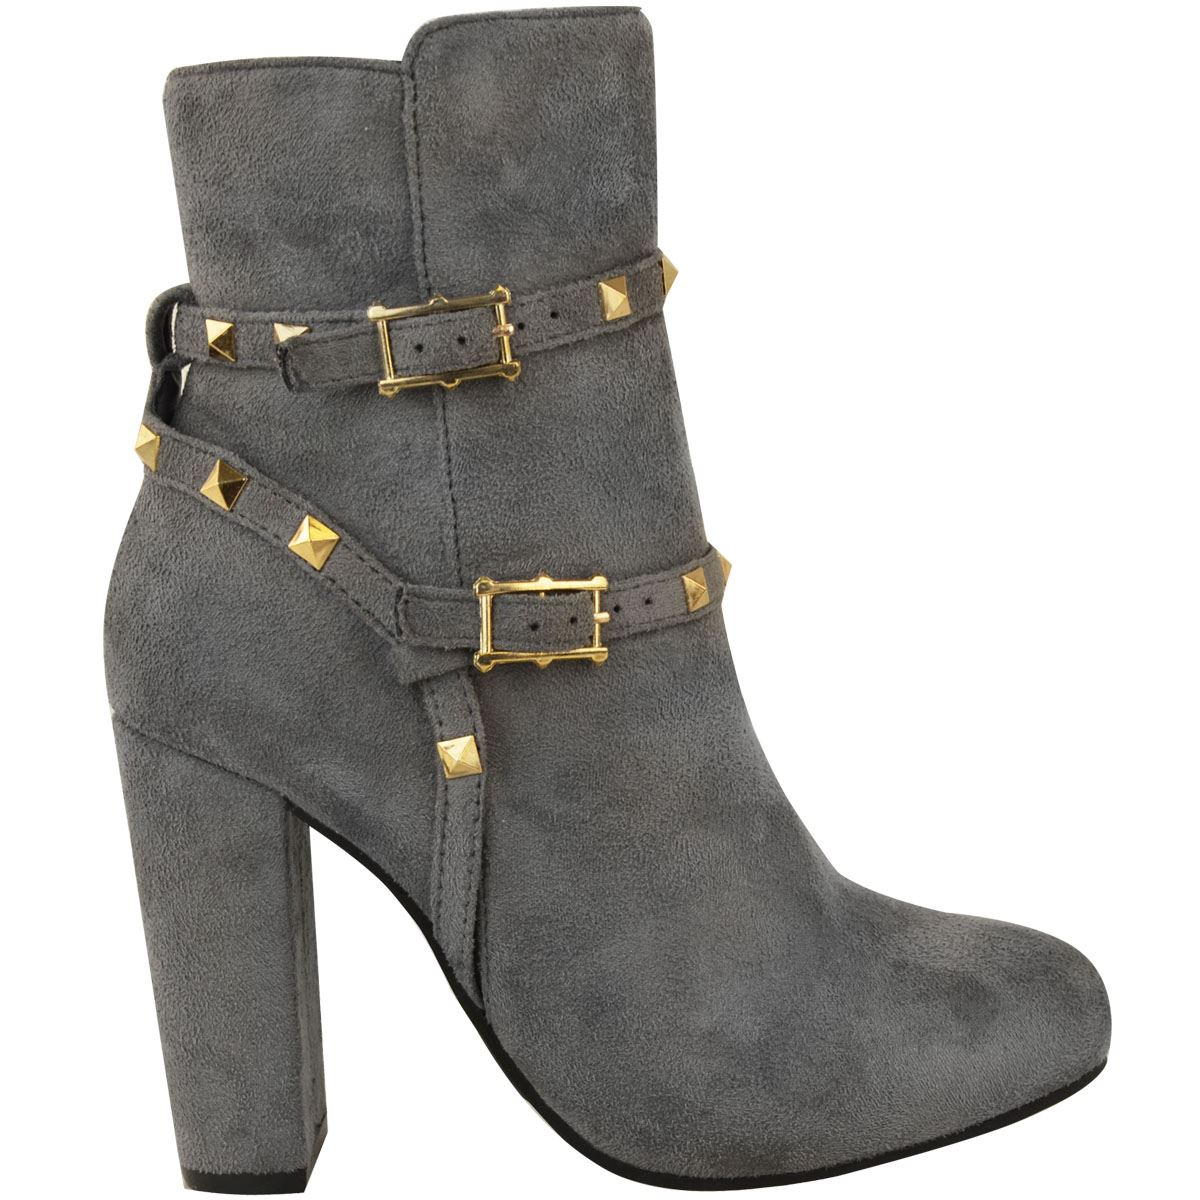 thumbnail 26 - WOMENS-LADIES-LOW-BLOCK-HEEL-CHELSEA-ANKLE-BOOTS-CUT-OUT-LACE-UP-SHOES-NEW-SIZE